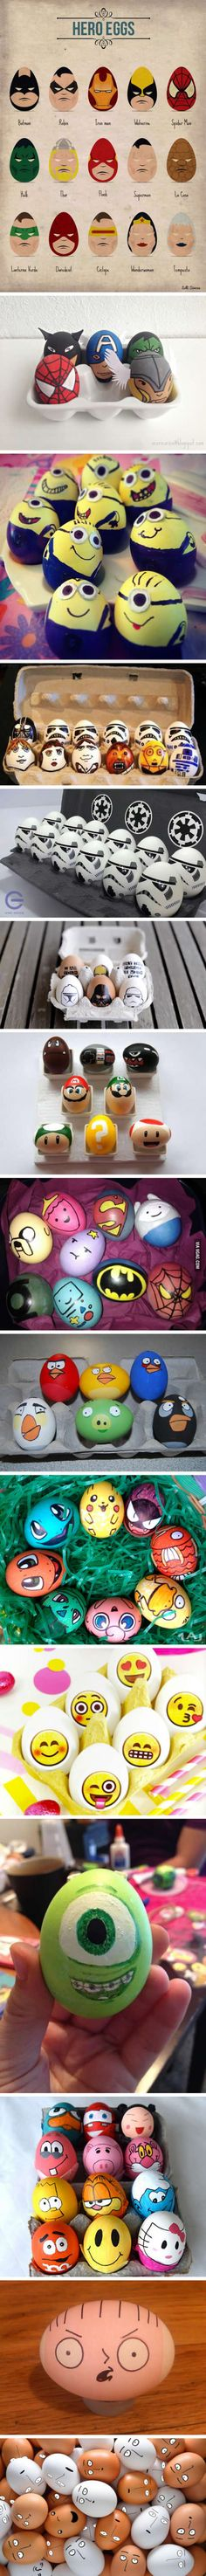 Some awesome Easter Egg ideas for you, if you don't;t want traditional ones